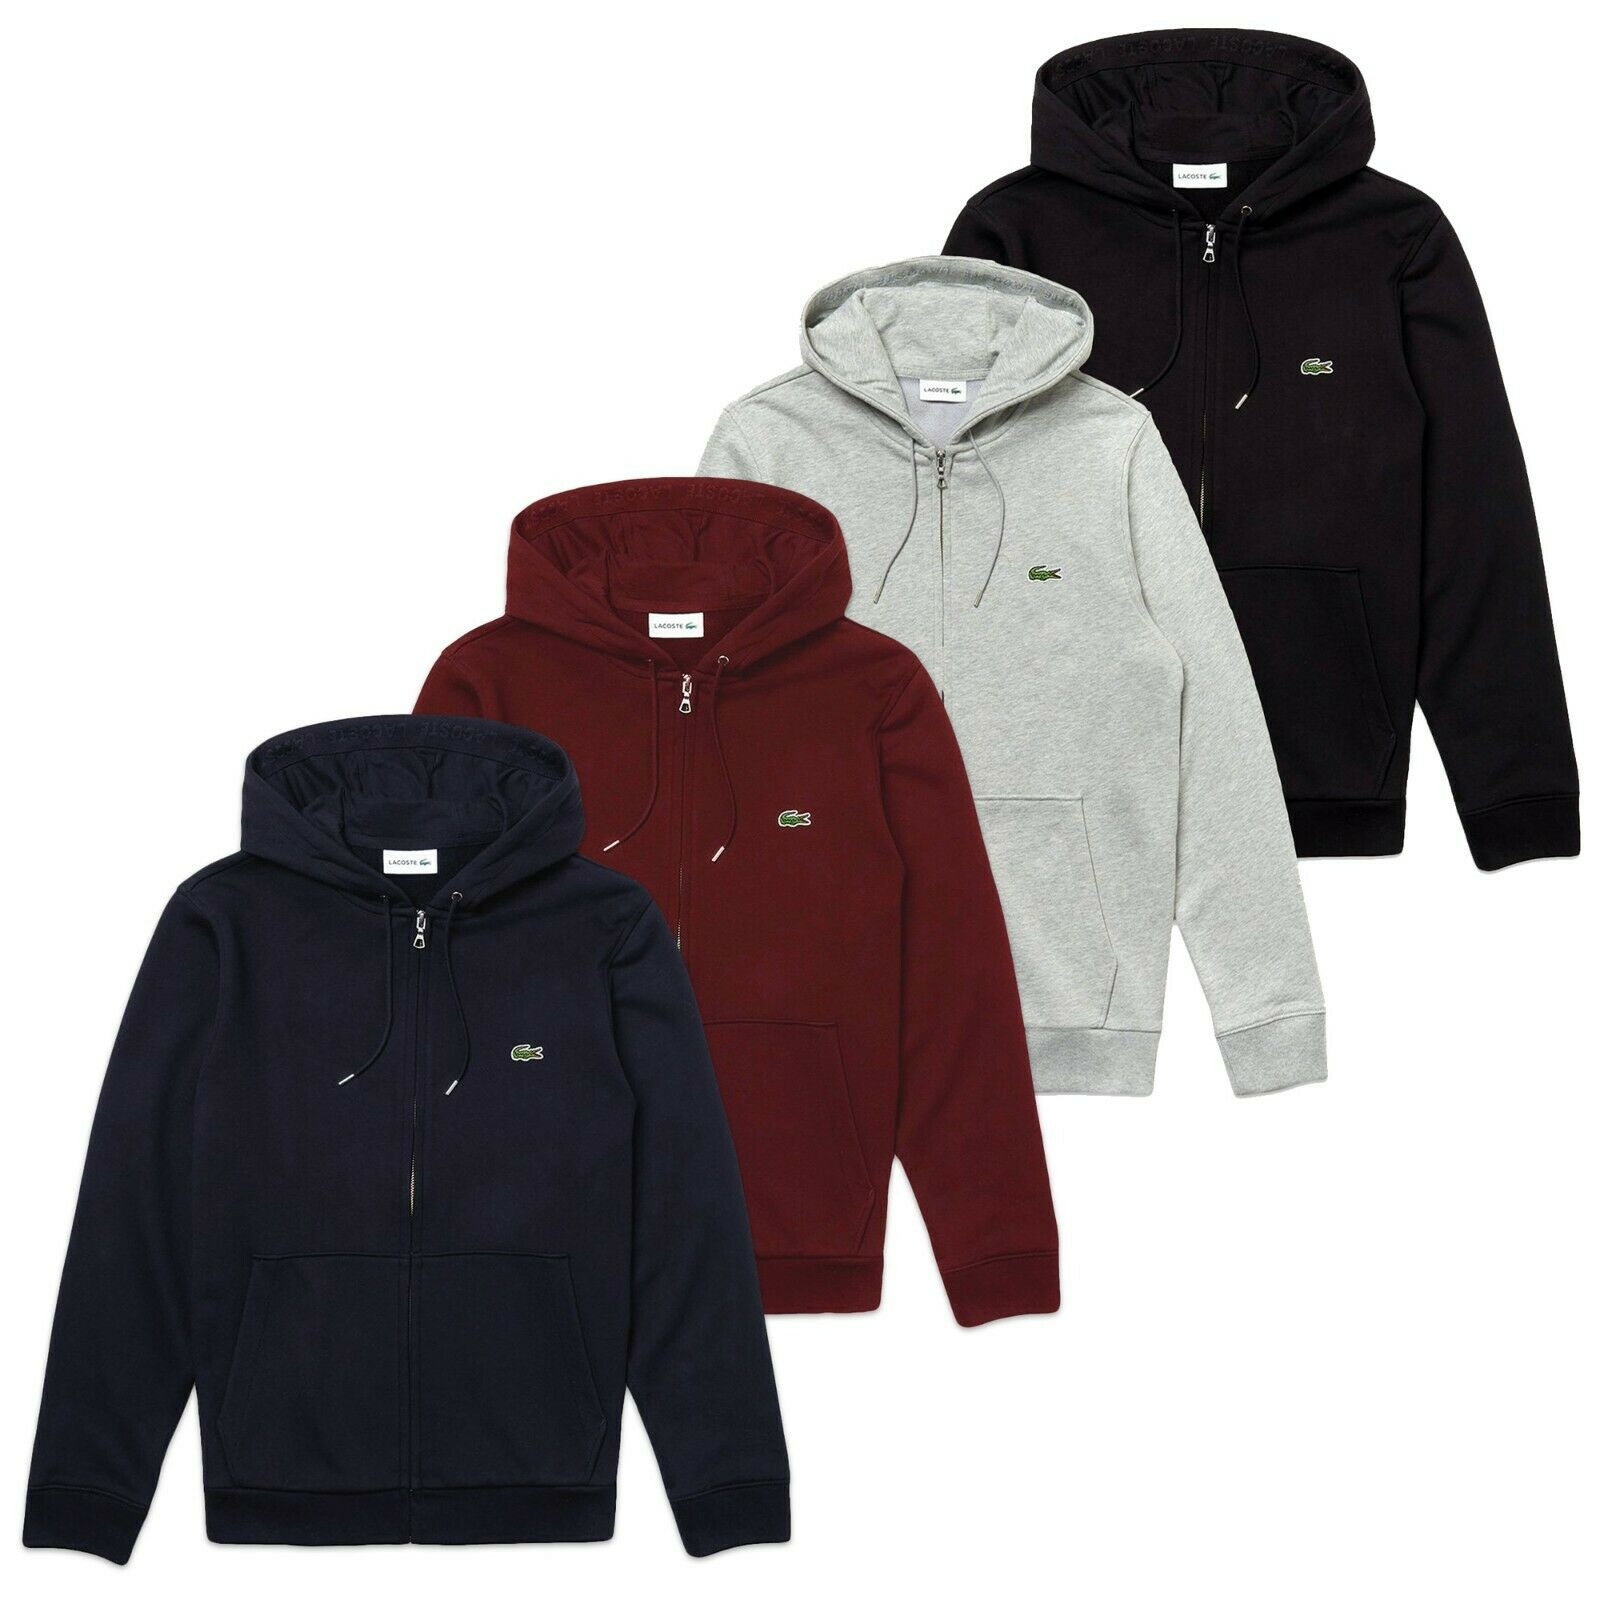 Lacoste Hoodie - Lacoste SH4286 Zip-Thru Hooded Sweat - Navy schwarz grau rot